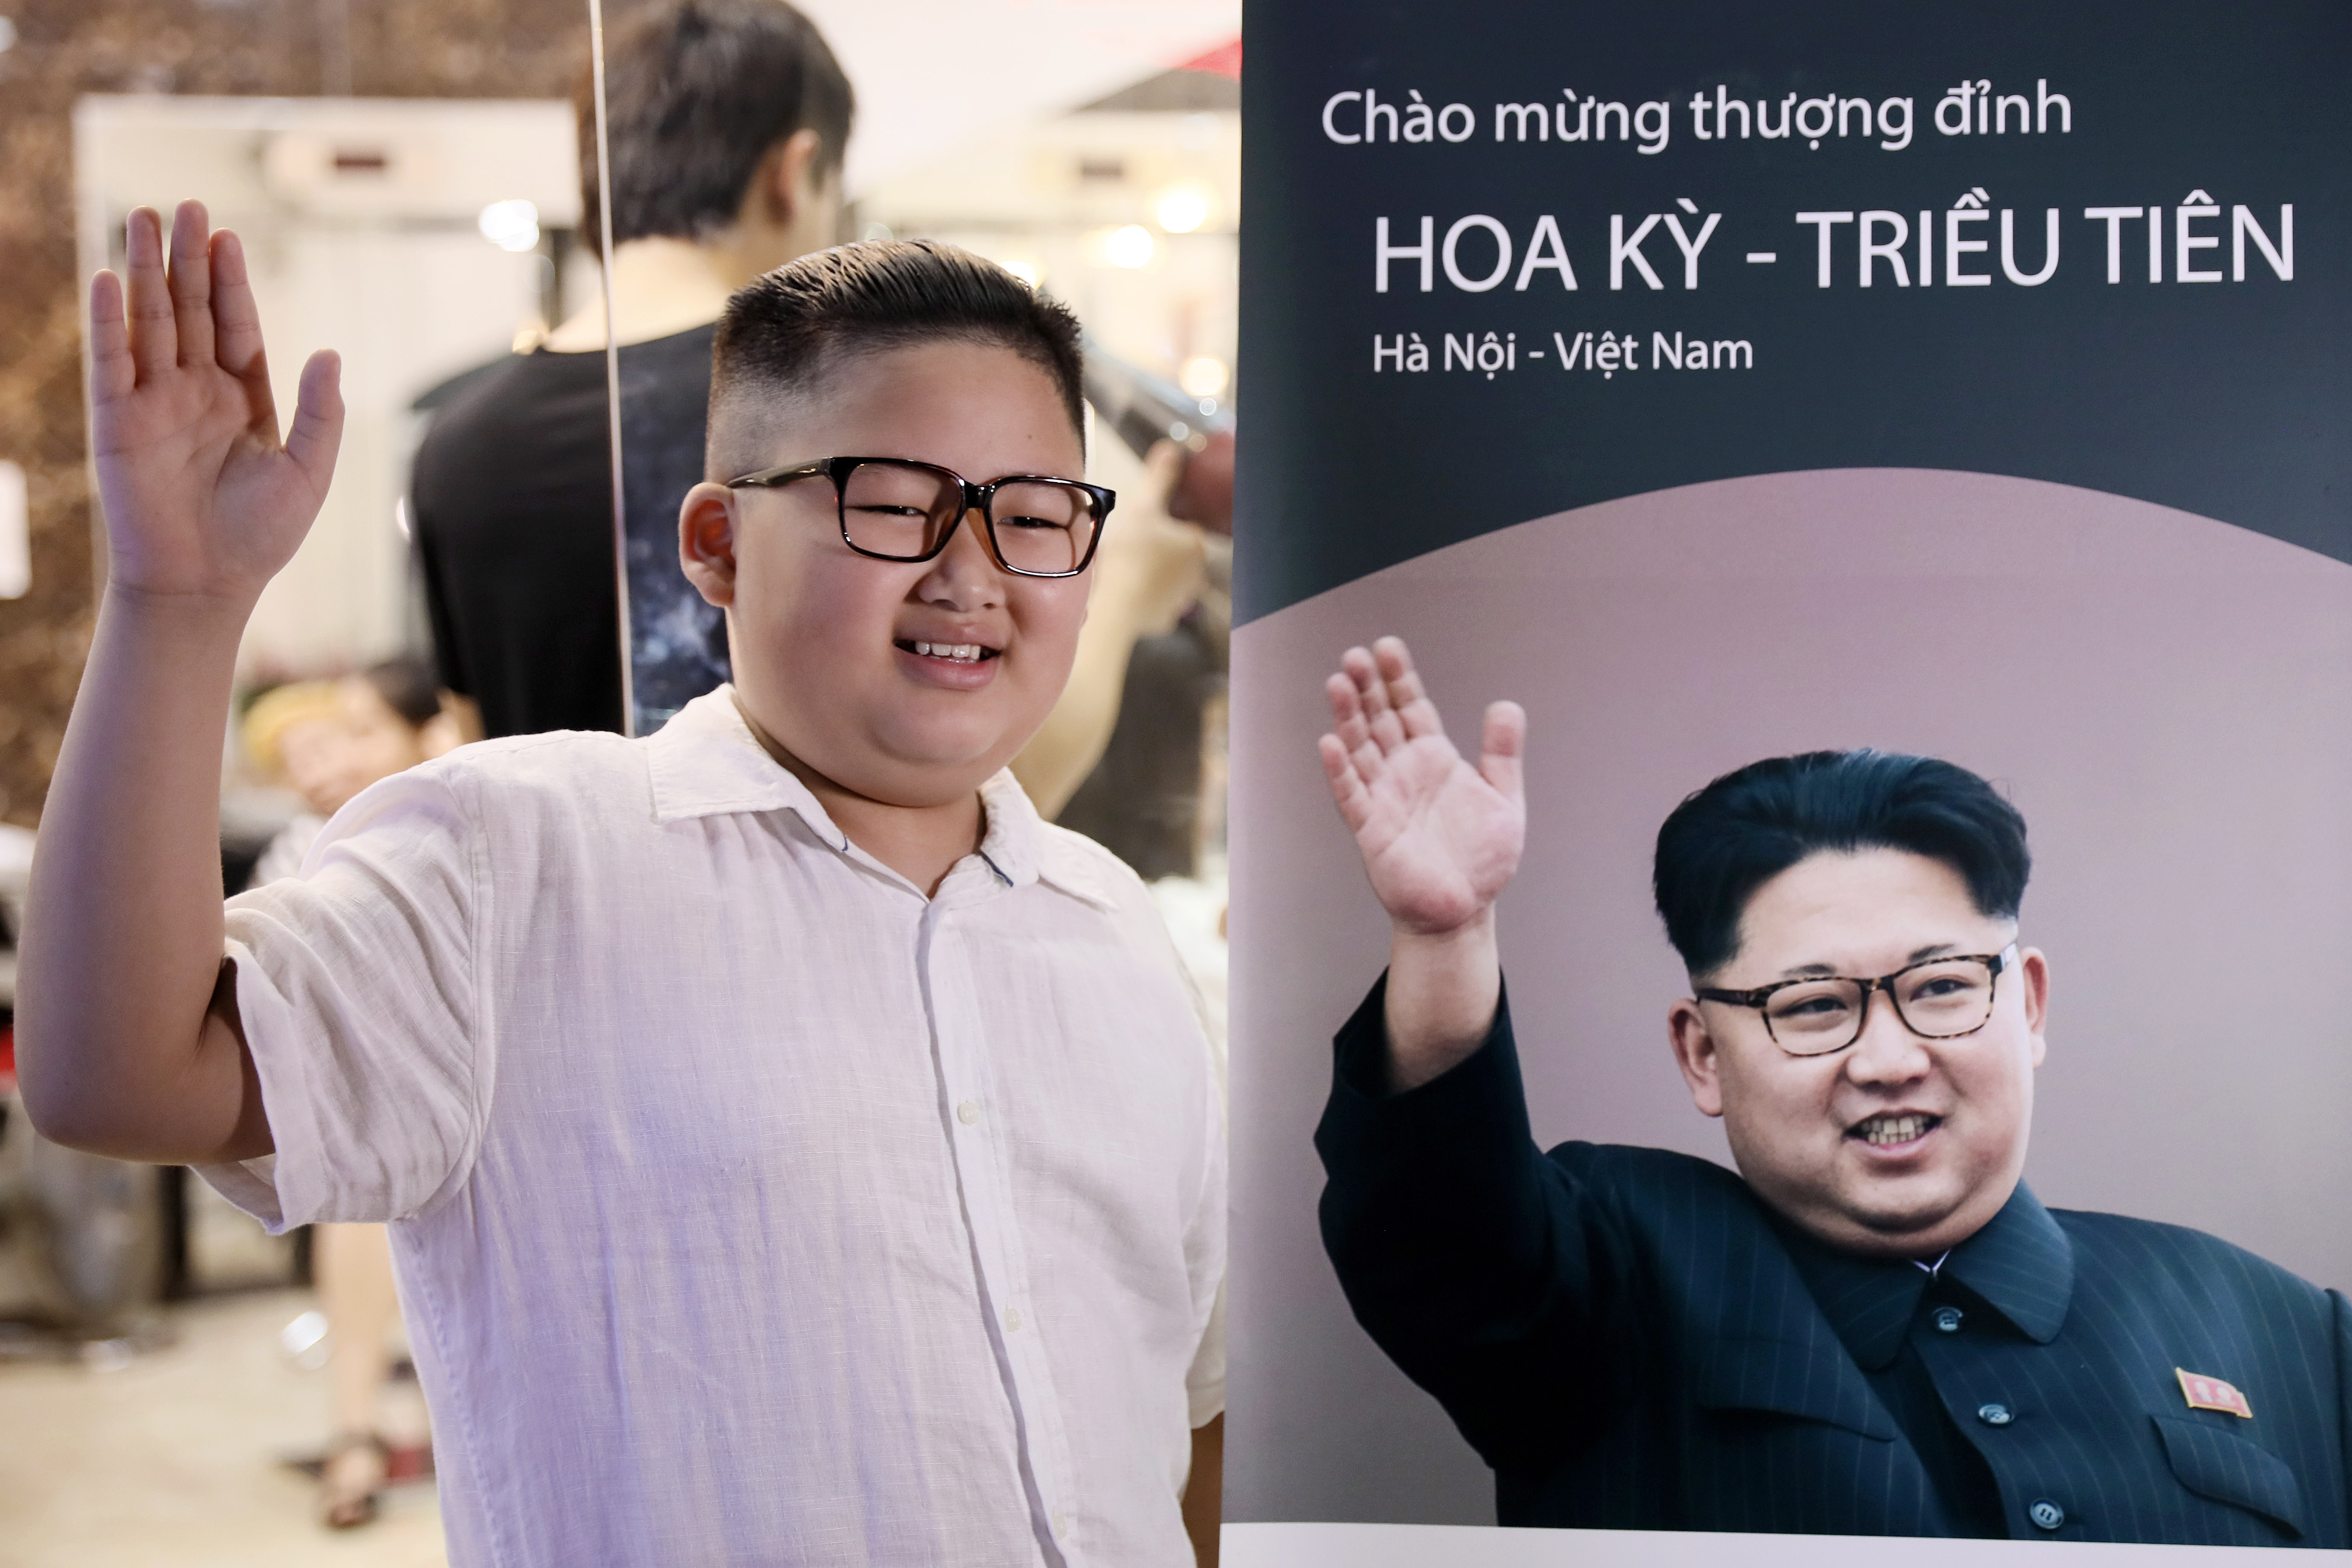 To Gia Huy said he often gets told he looks like the North Korean leader. Credit: Shutterstock